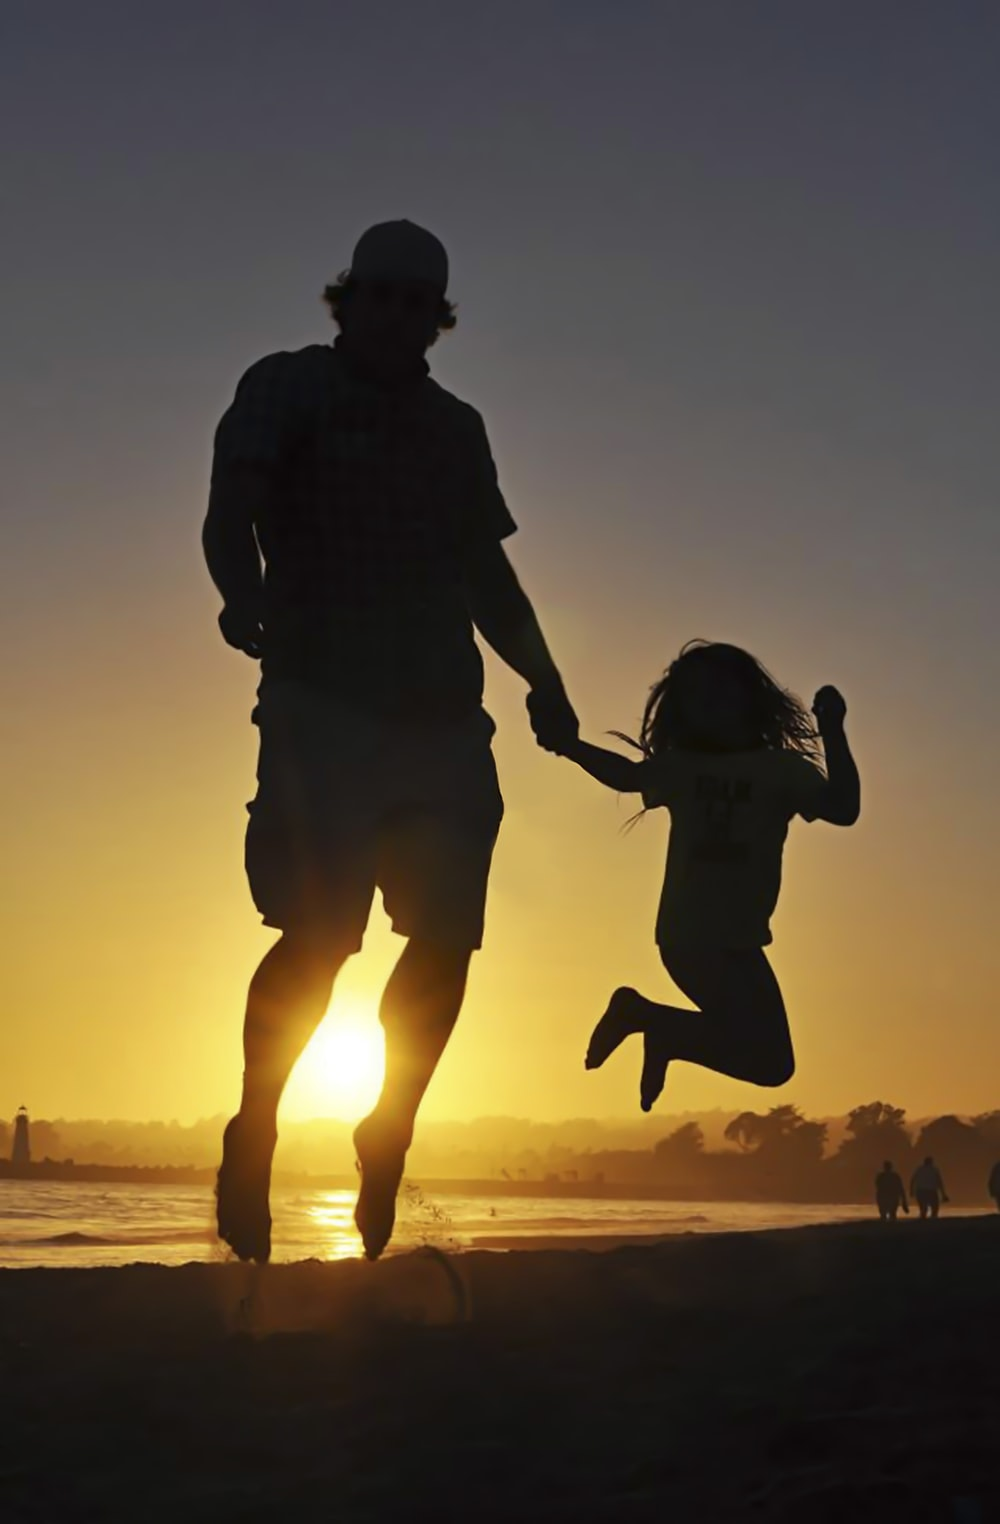 silhouette of girl and man